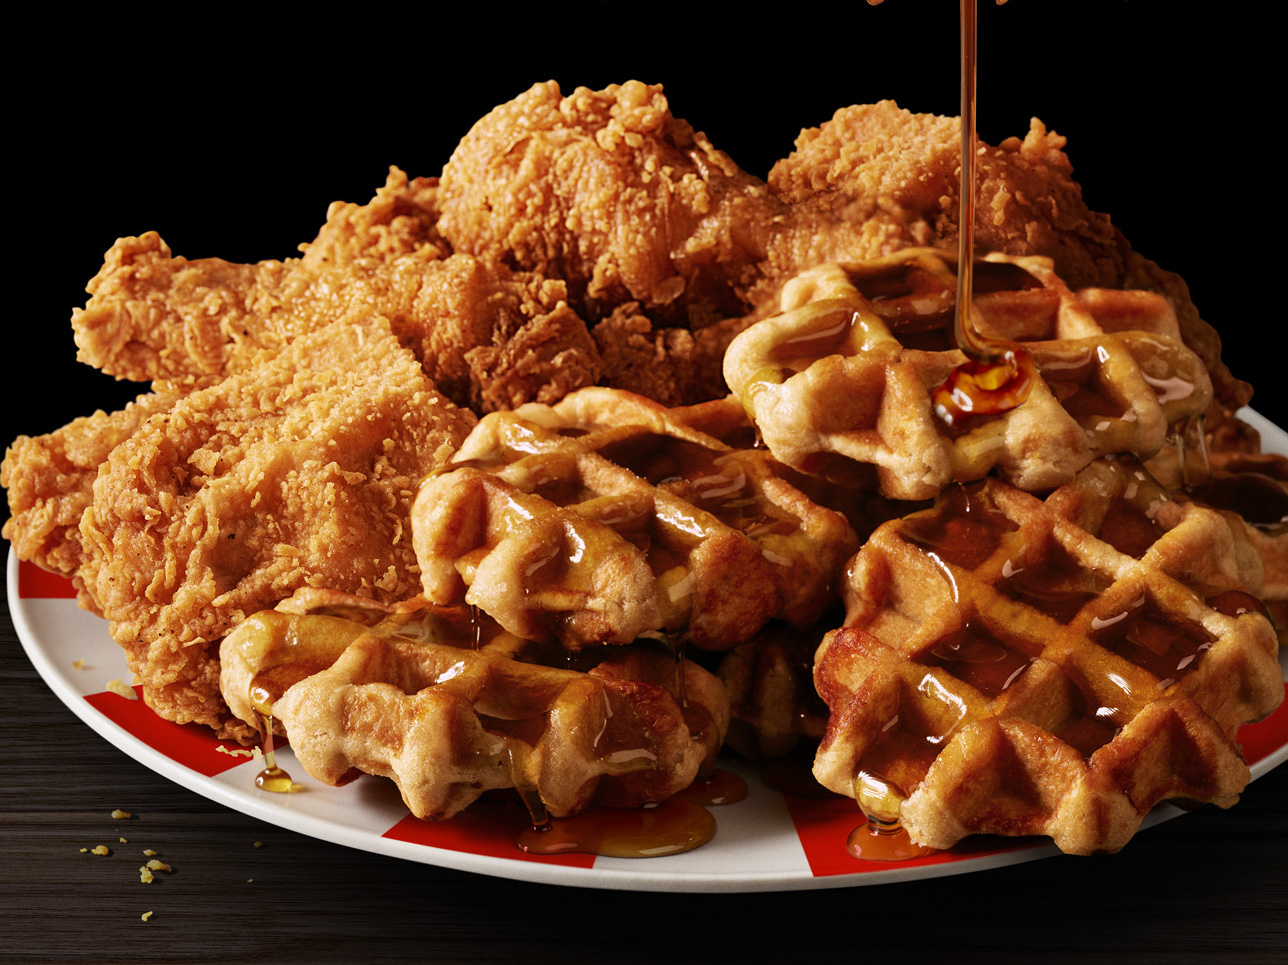 kfc-chicken-waffles-FT-BLOG1118.jpg